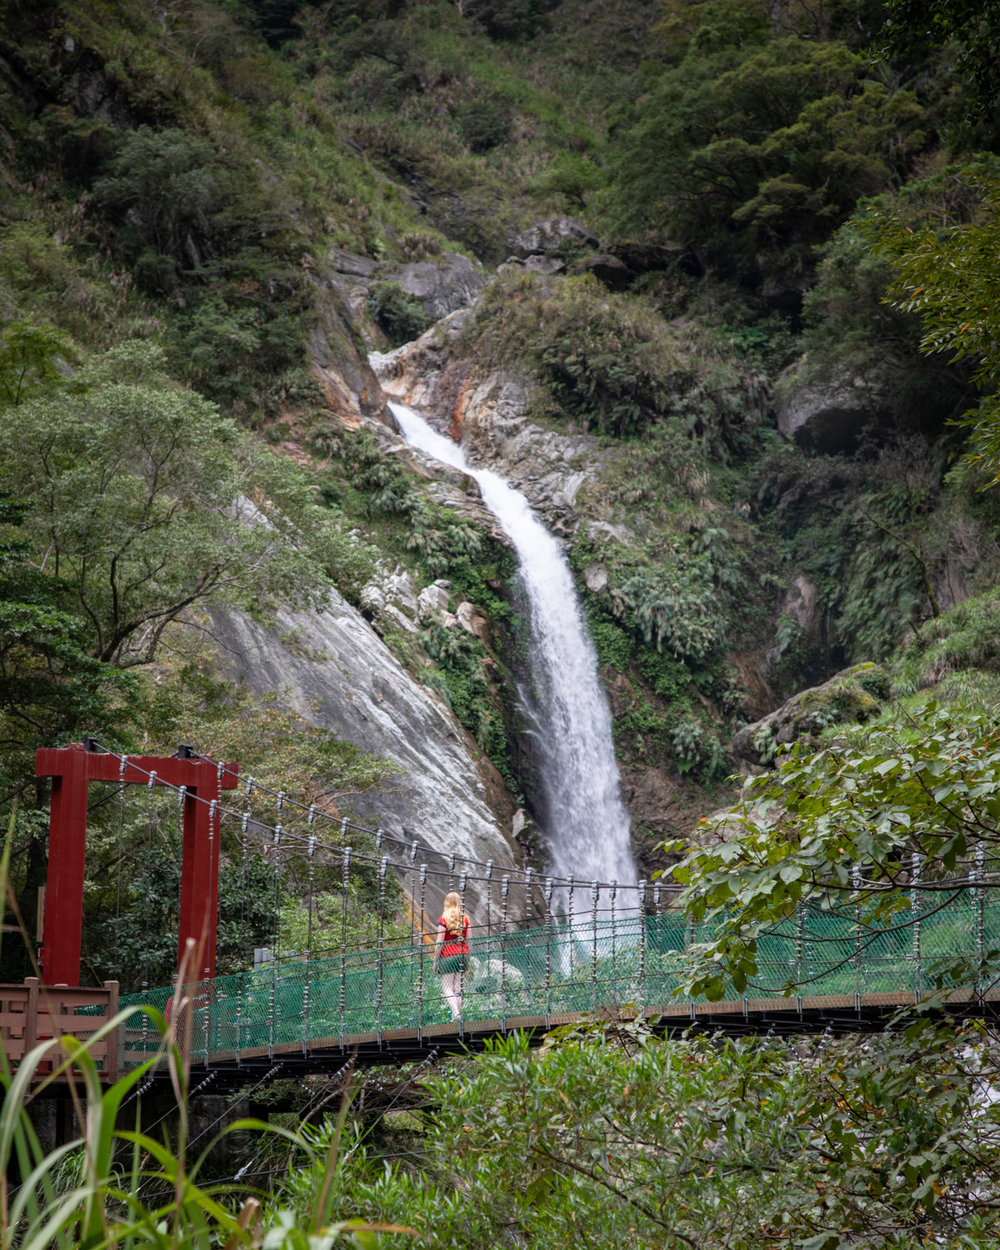 Photography spots in Taiwan - Baiyang Waterfall, Taroko Gorge